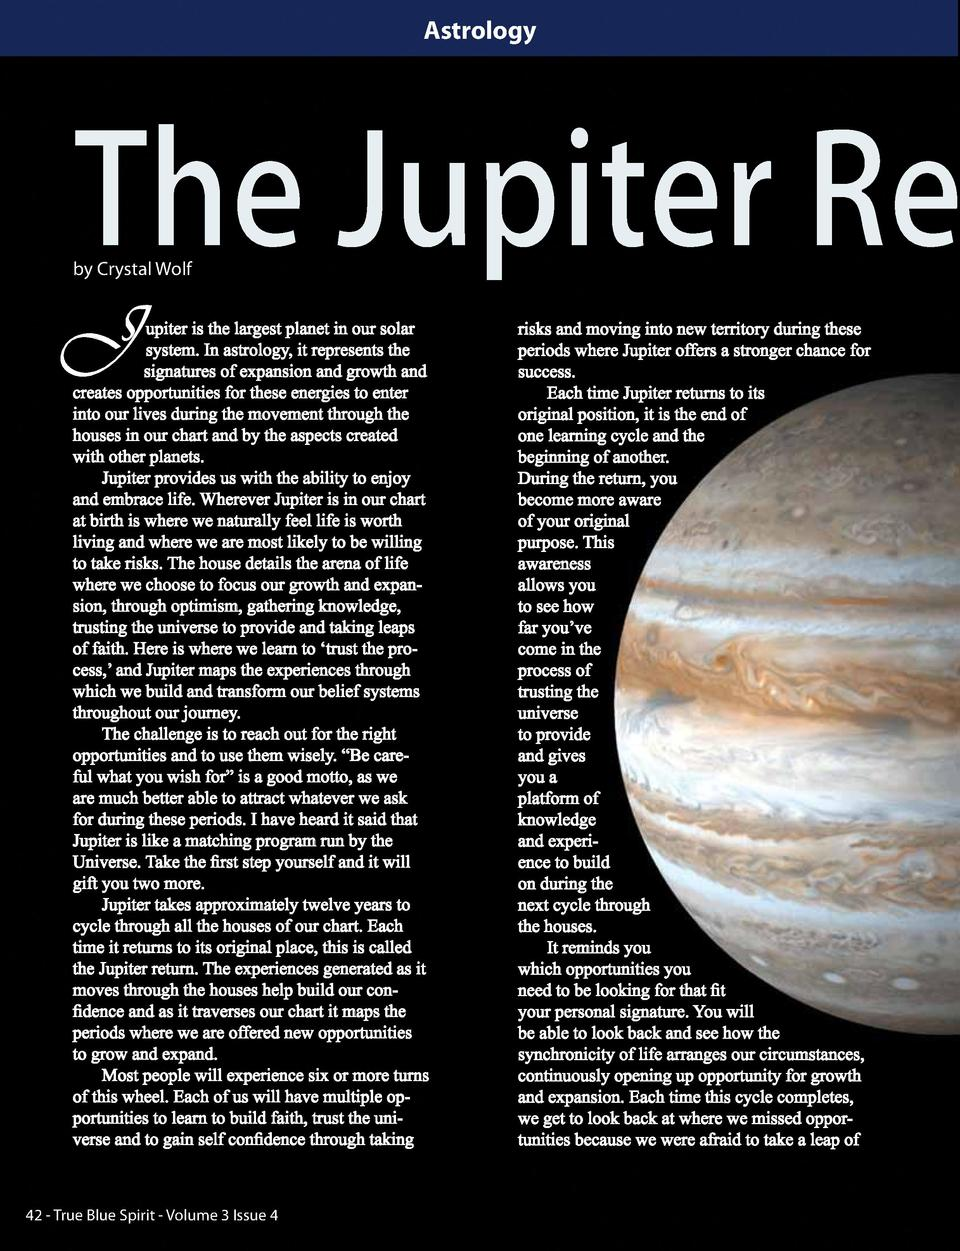 Astrology  The Jupiter Re by Crystal Wolf  J  upiter is the largest planet in our solar system. In astrology, it represent...